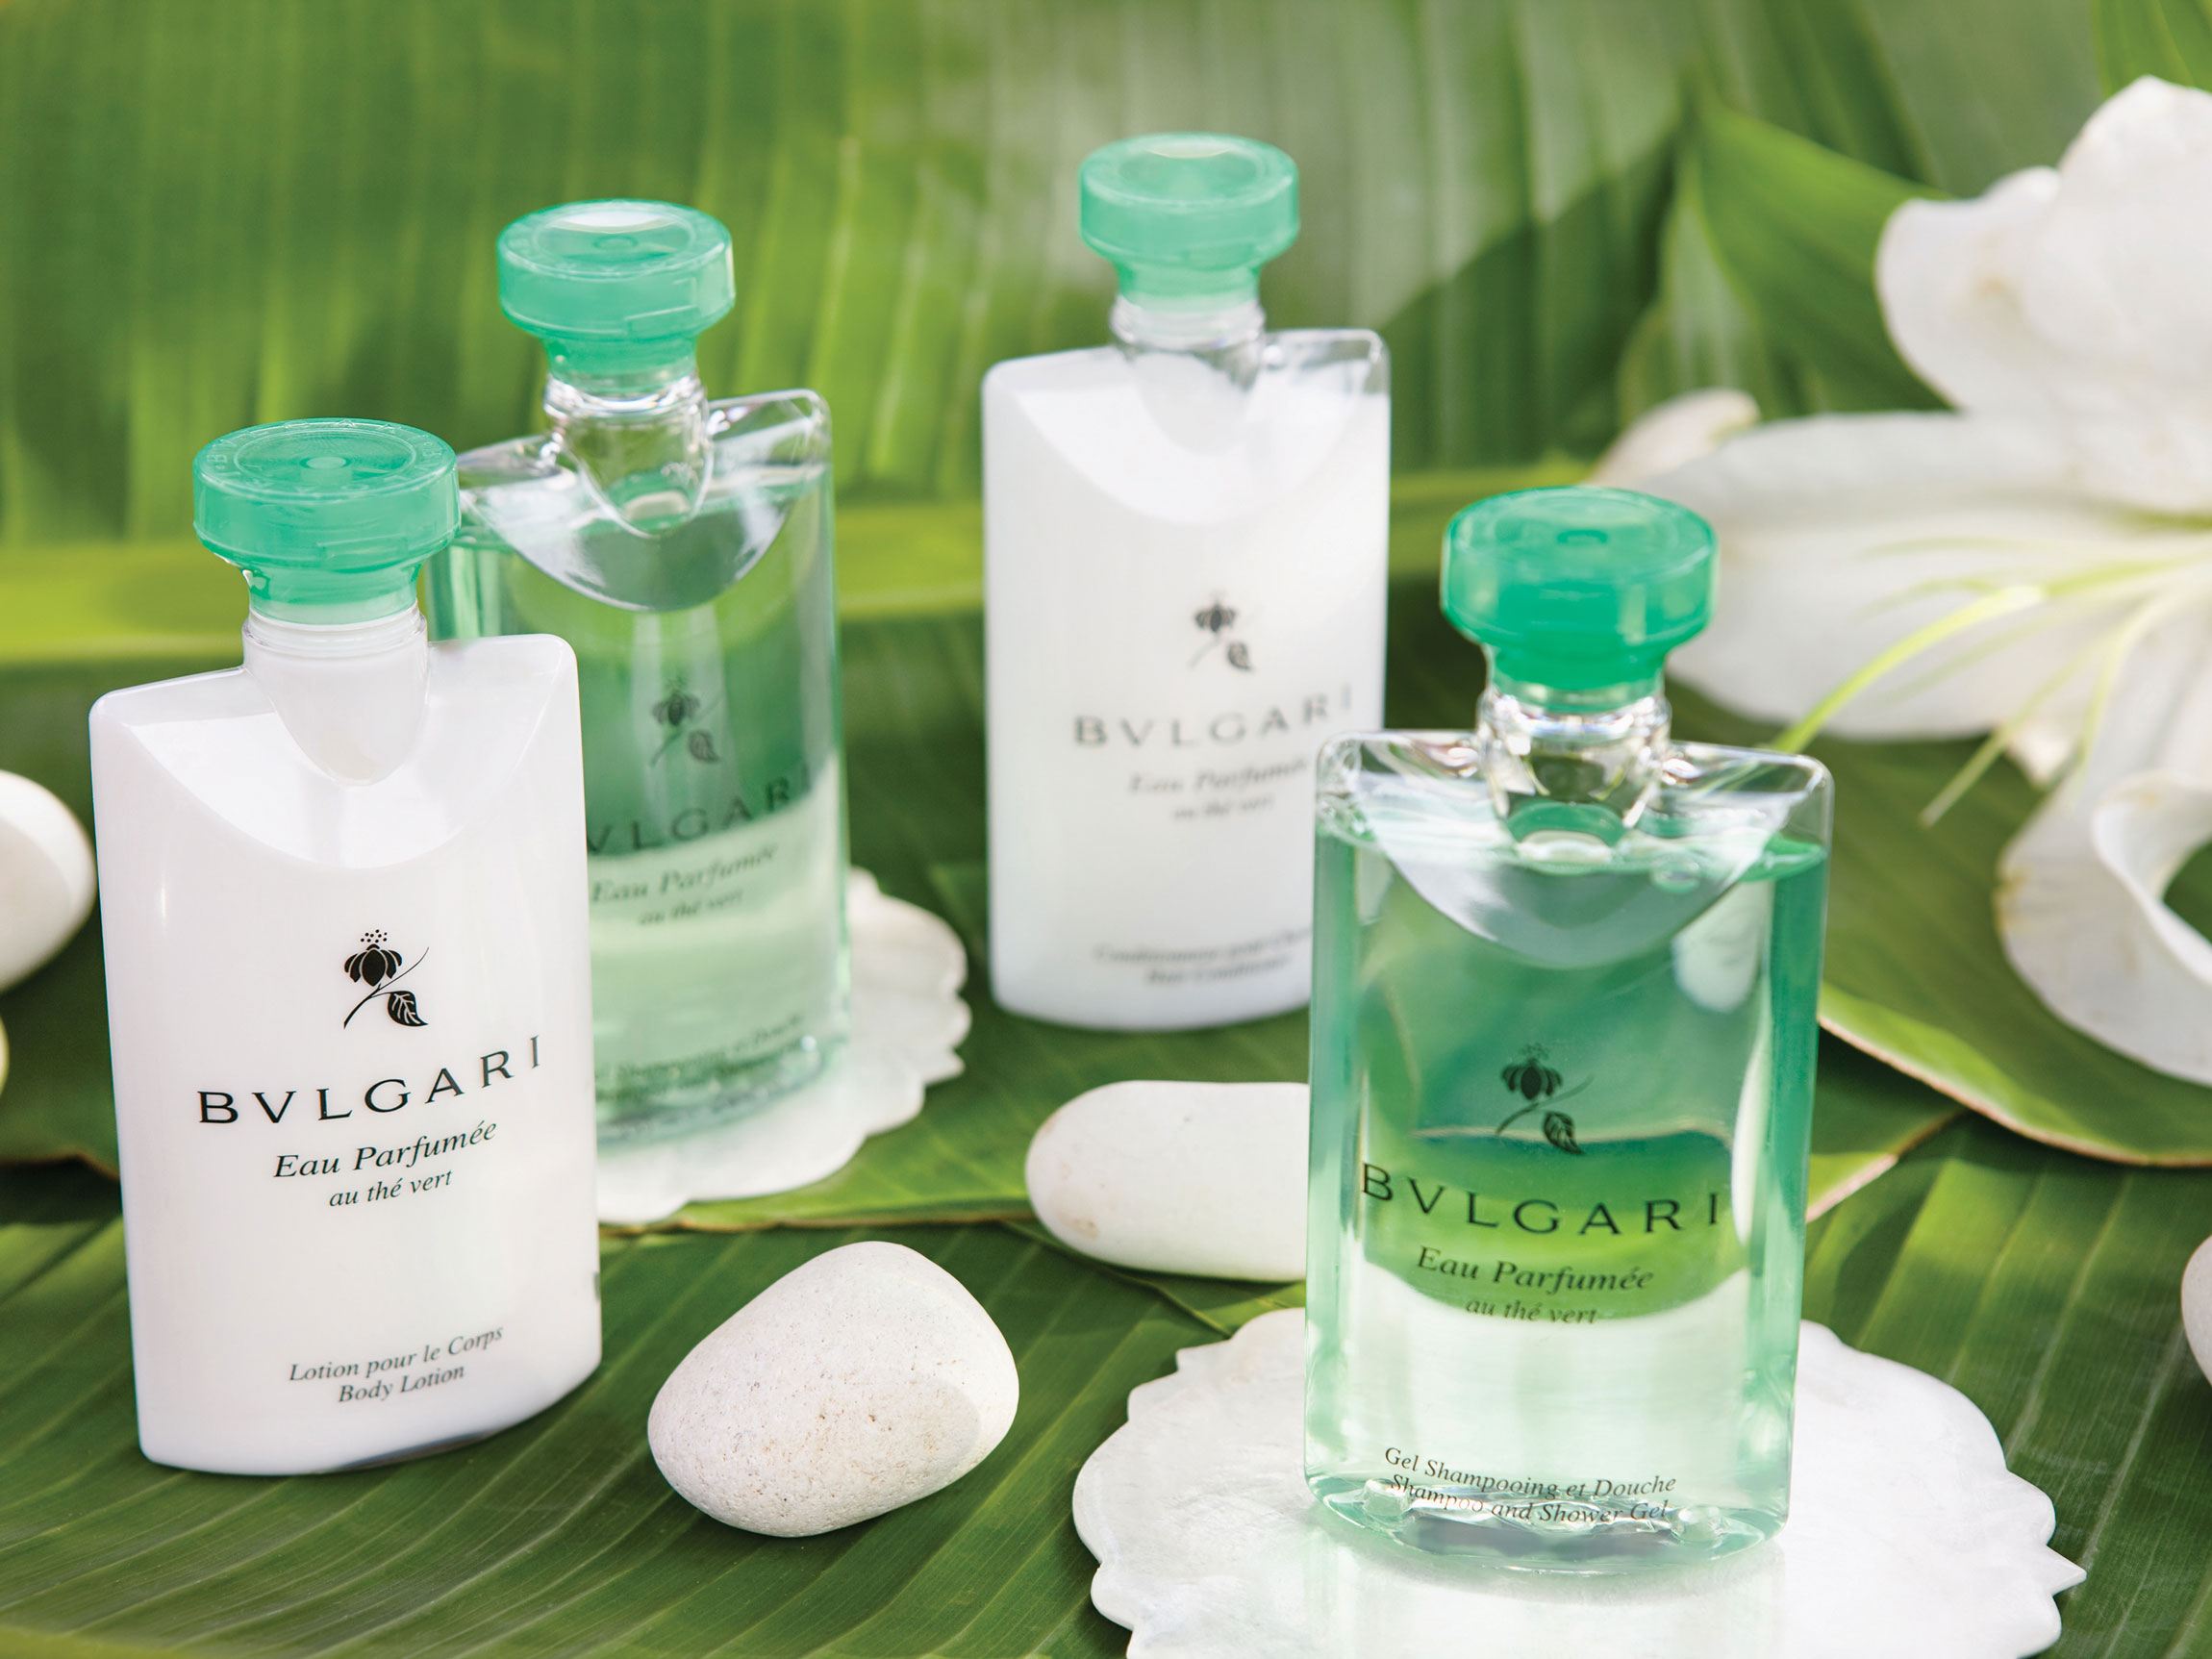 Bvlgari Soap Hotel Amenities